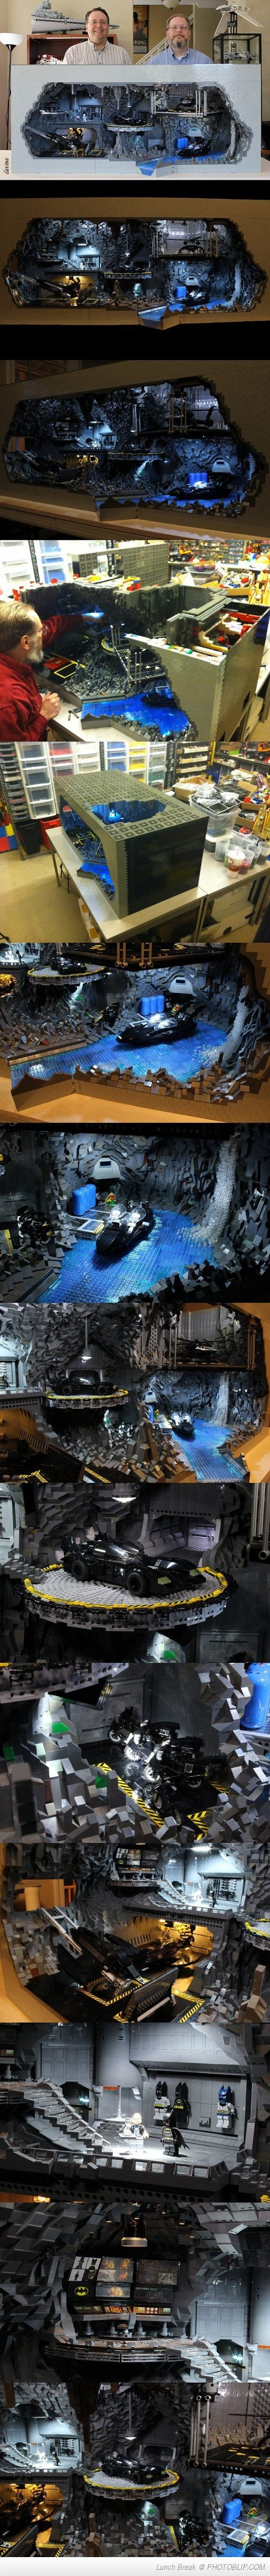 Batcave Made Out Of 20,000 Lego Pieces!